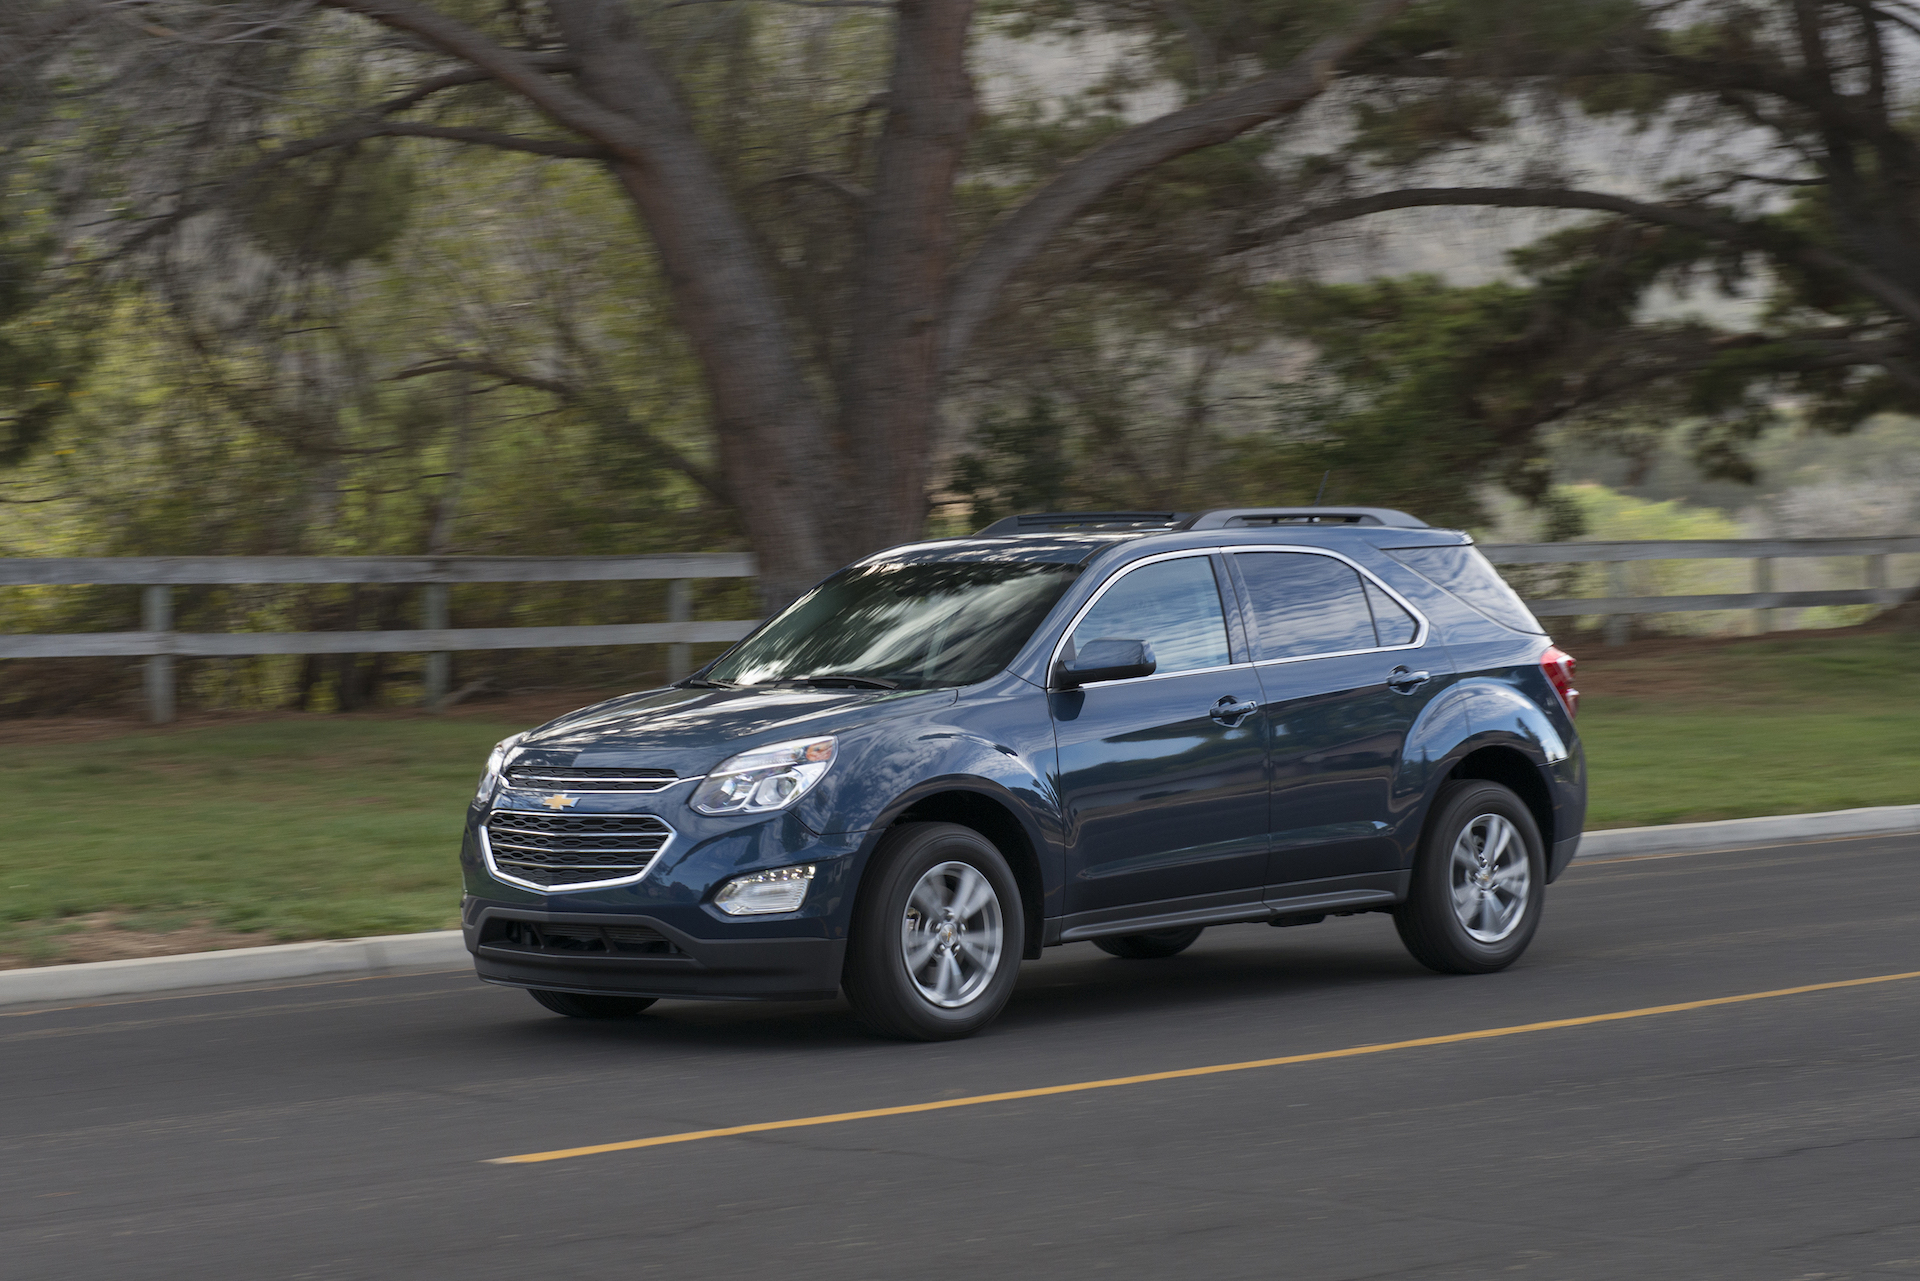 2017 chevrolet equinox chevy features review the car connection. Black Bedroom Furniture Sets. Home Design Ideas